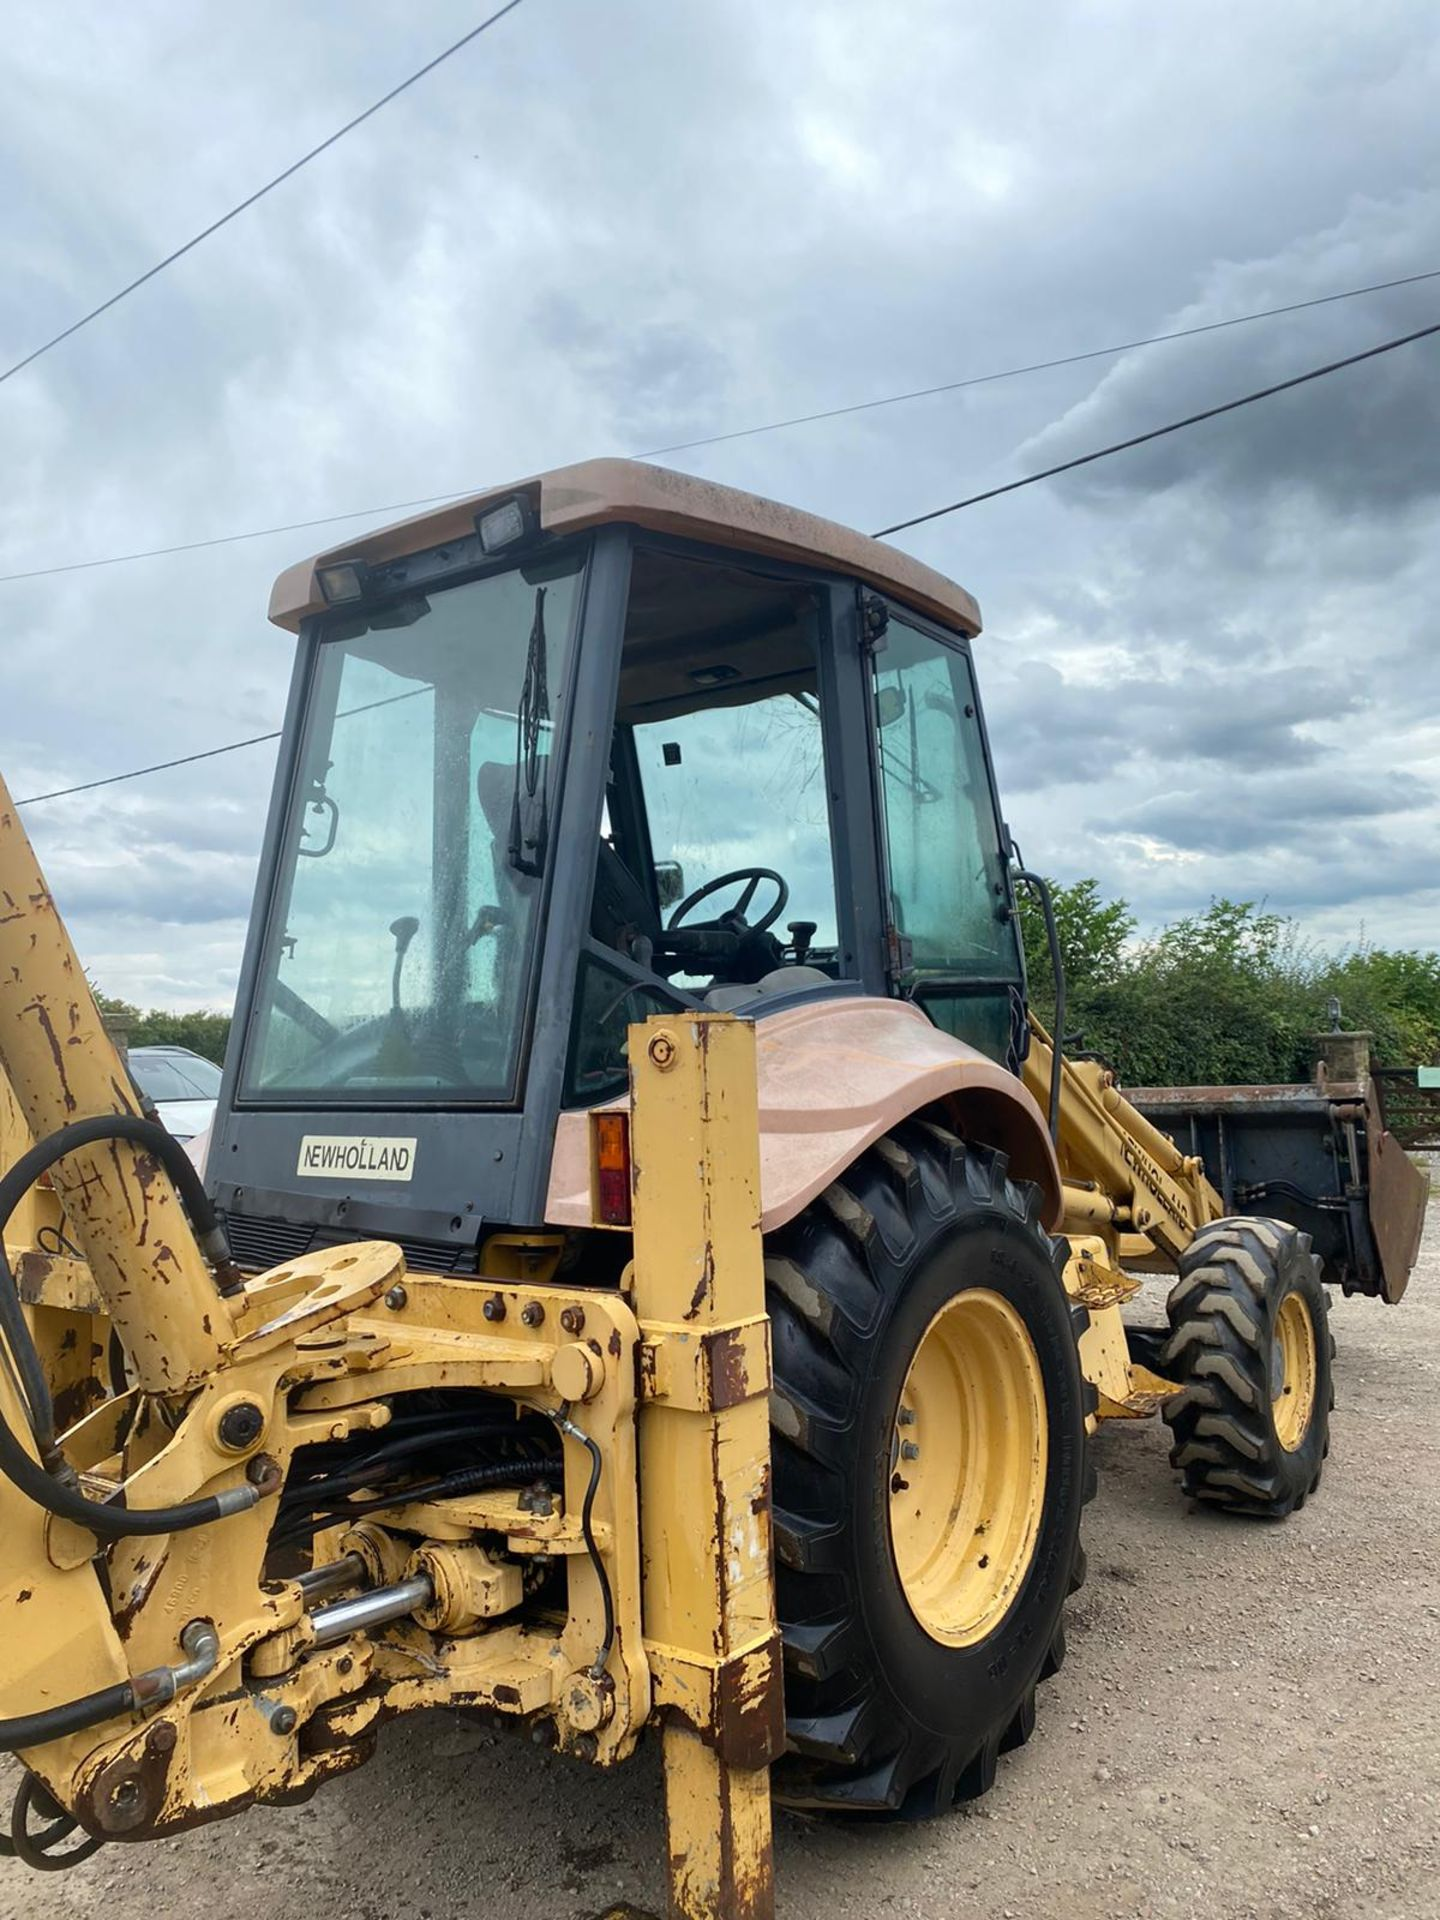 NEWHOLLAND NH95 DIGGER LOADER, 4 WHEEL DRIVE, 4-IN-1 BUCKET, EXTRA DIG, RUNS, WORKS AND DIGS - Image 5 of 8